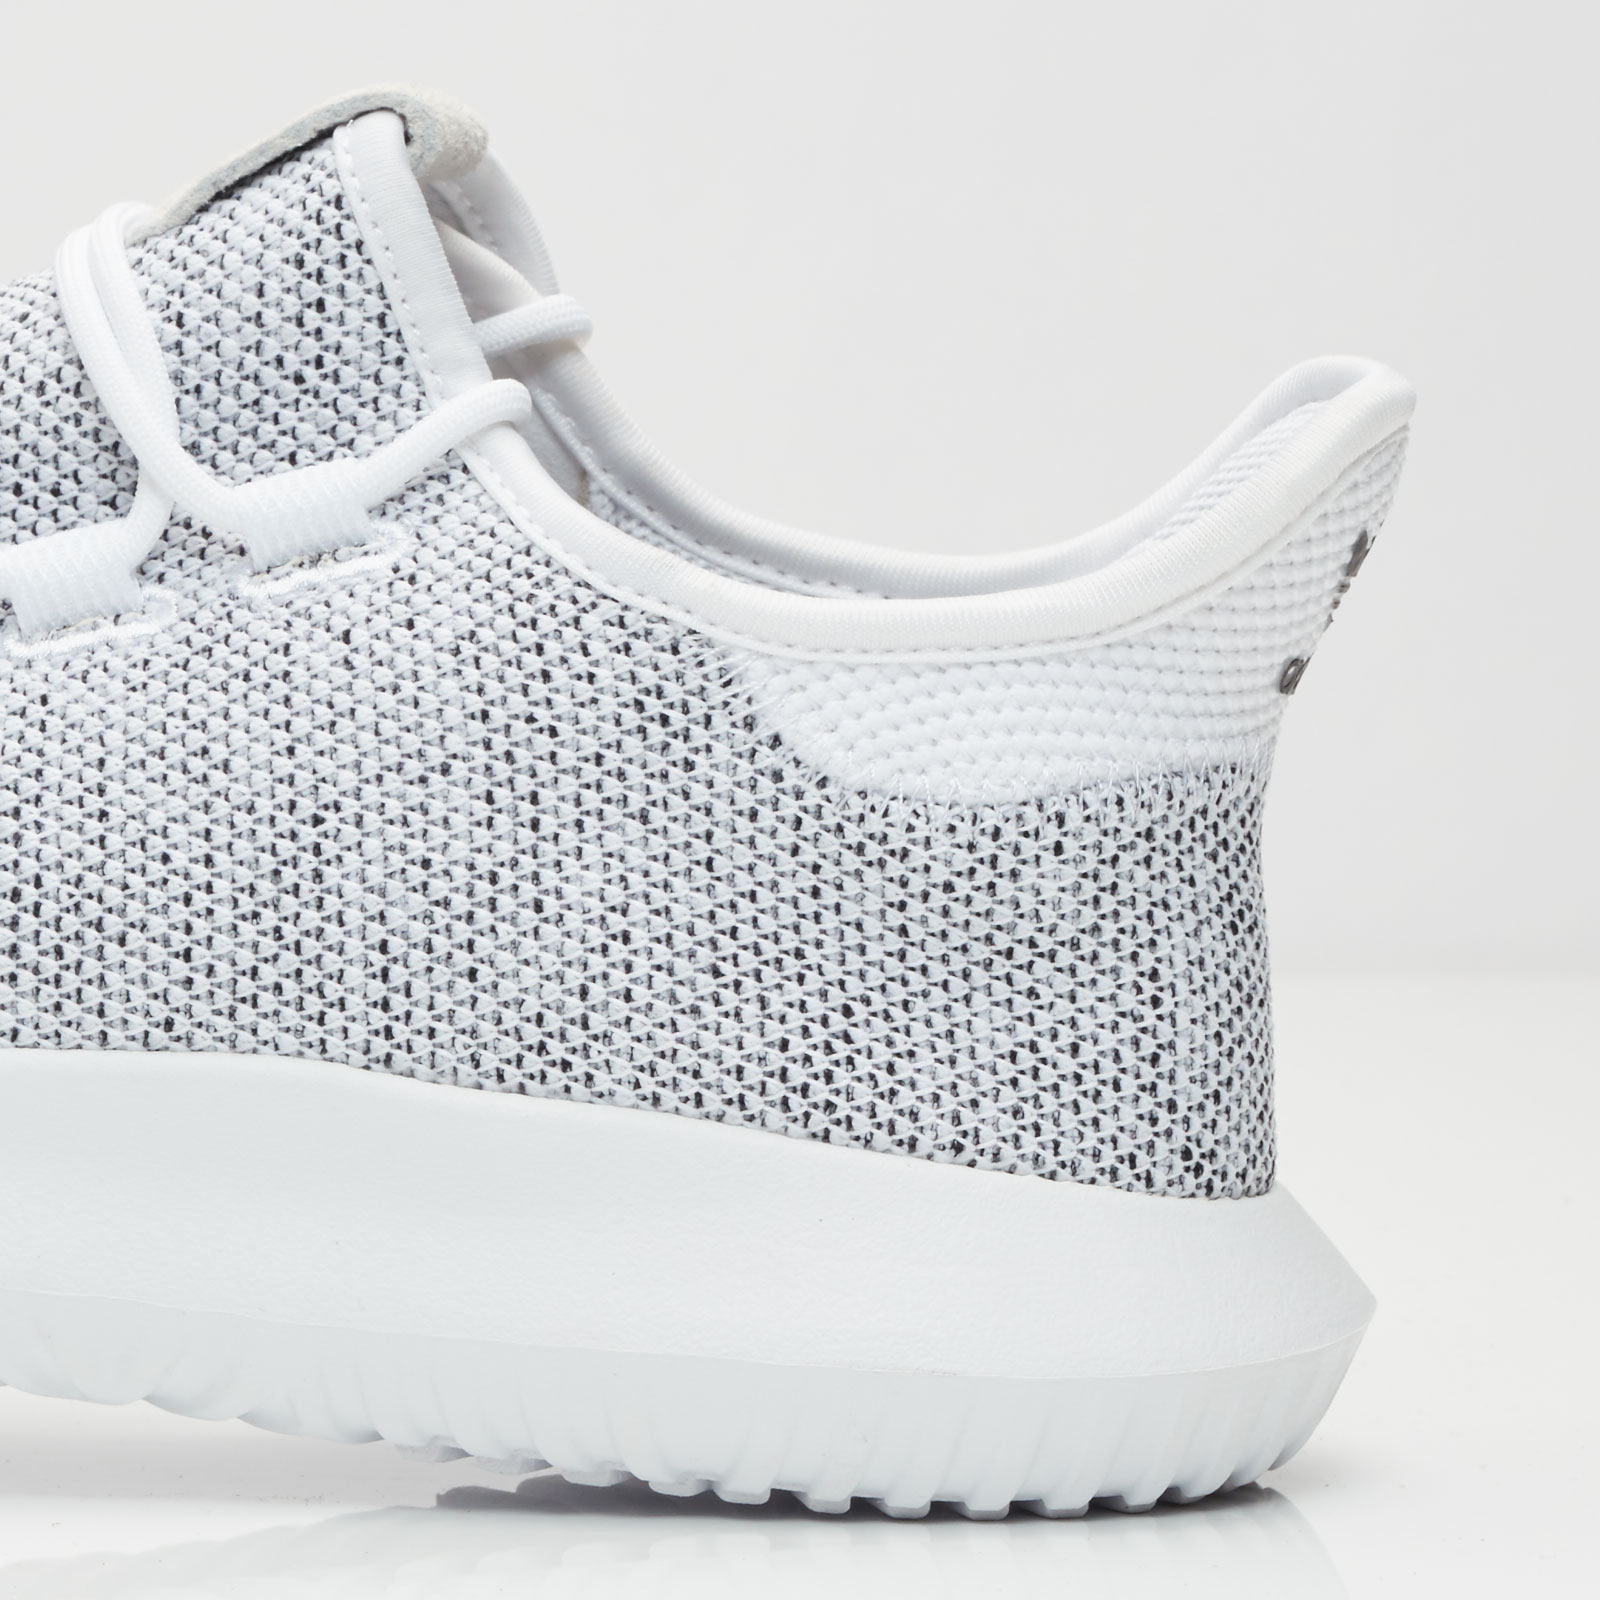 check out e1b1b 41ee8 adidas Tubular Shadow Knit - Bb8941 - Sneakersnstuff ...